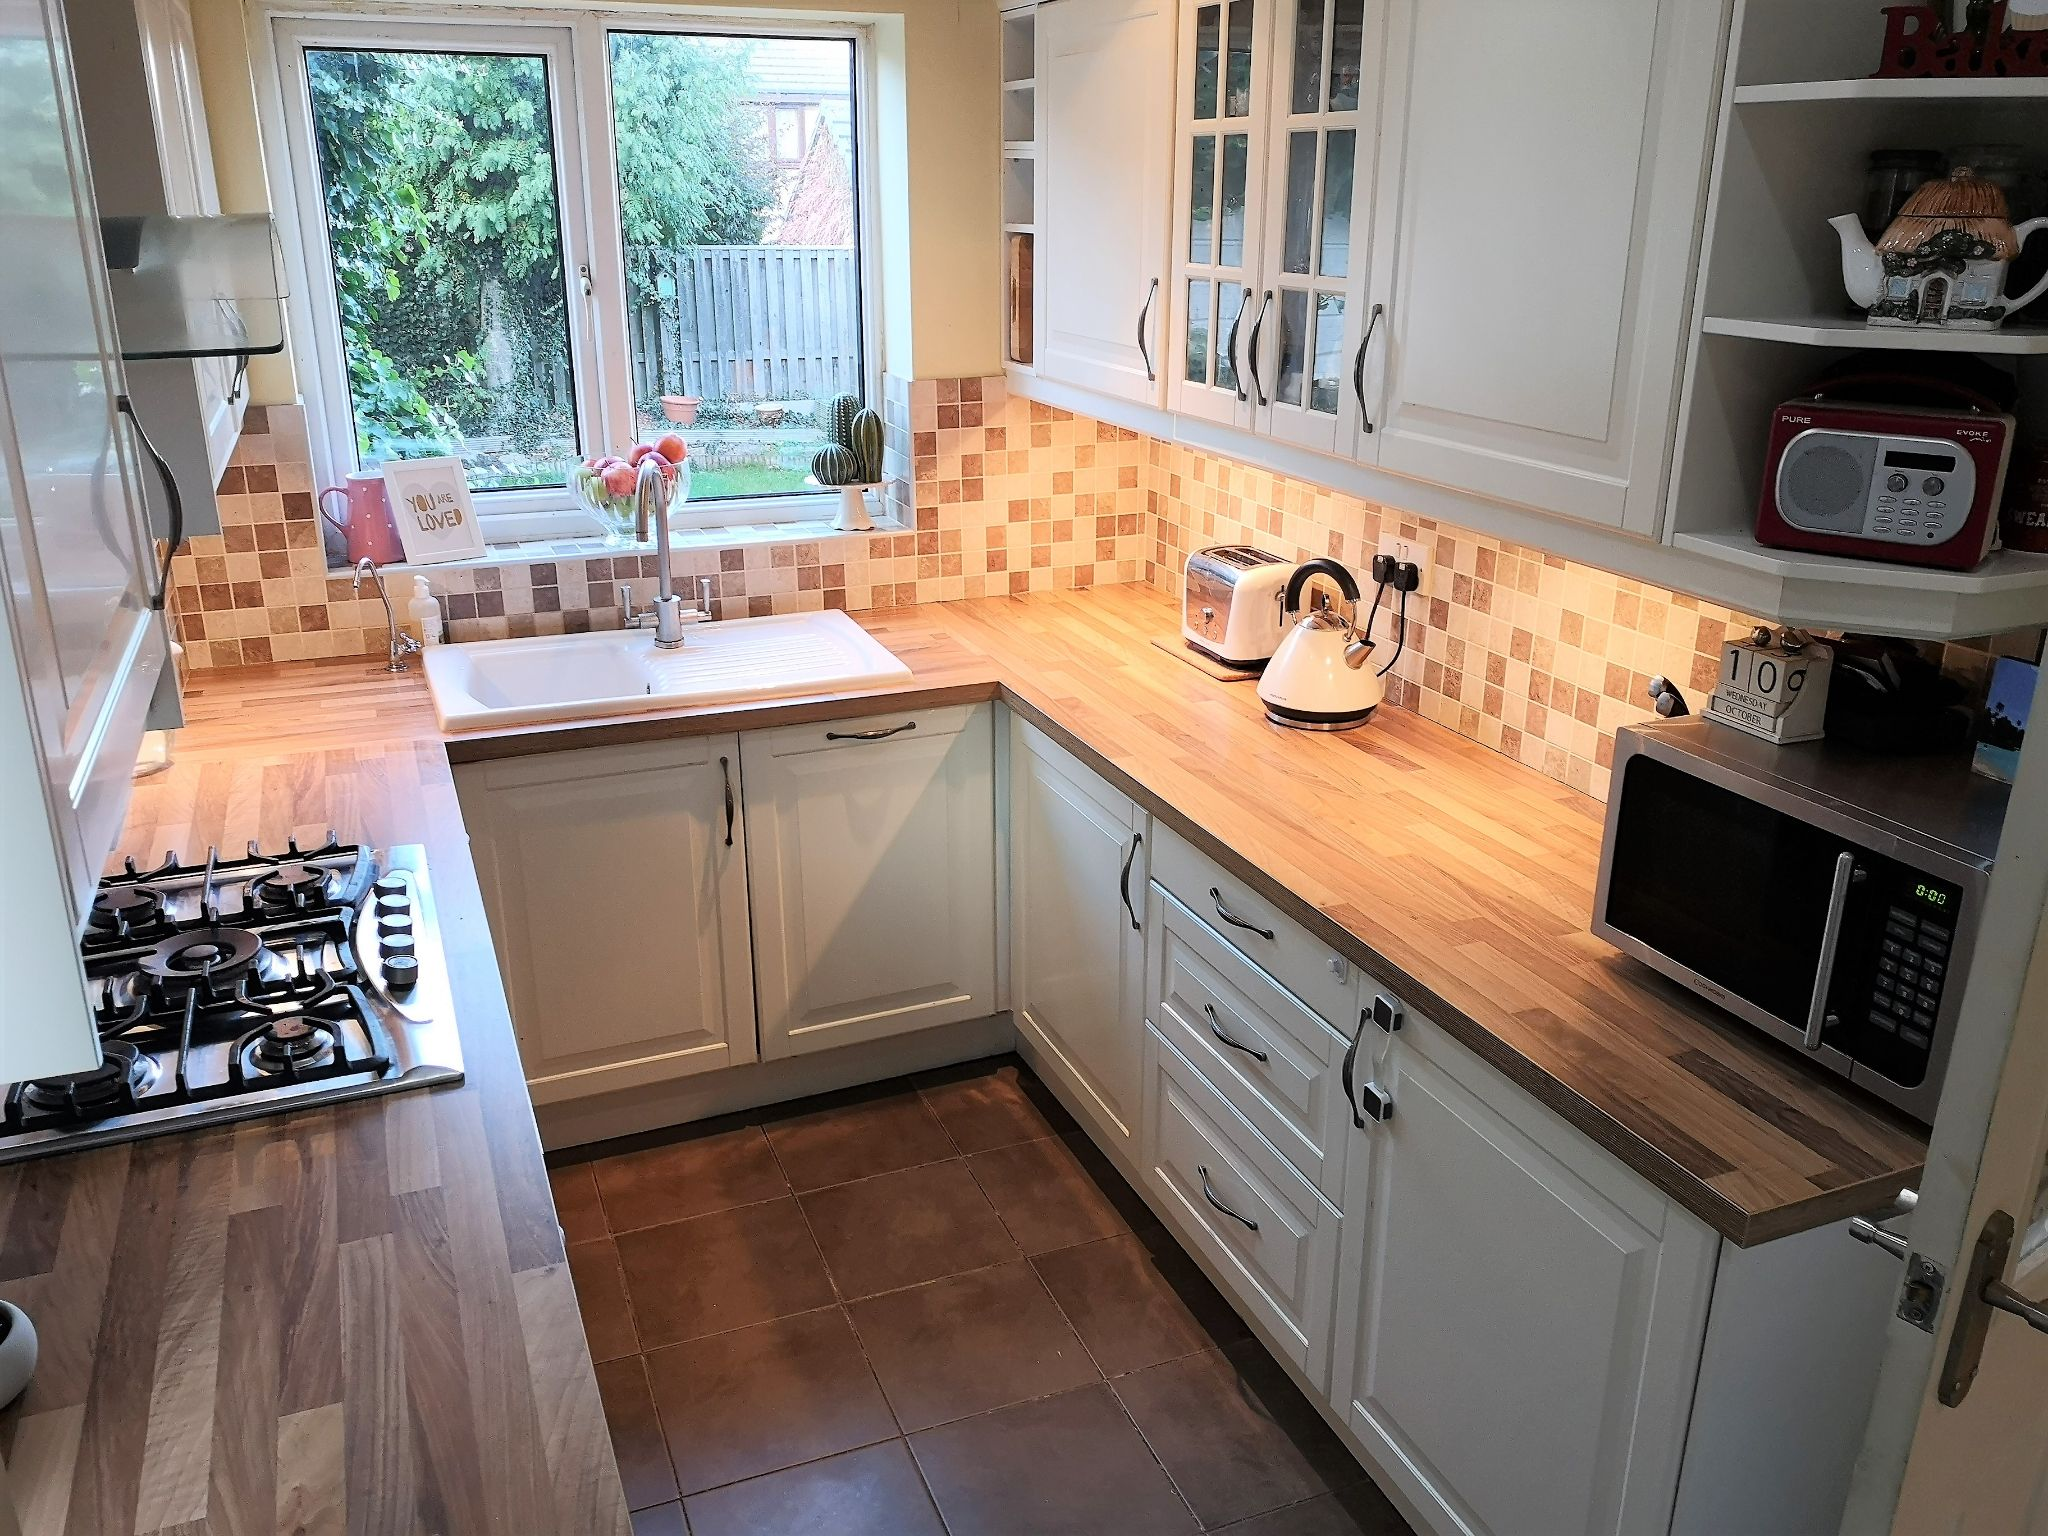 3 bedroom semi-detached house SSTC in Huddersfield - Photograph 8